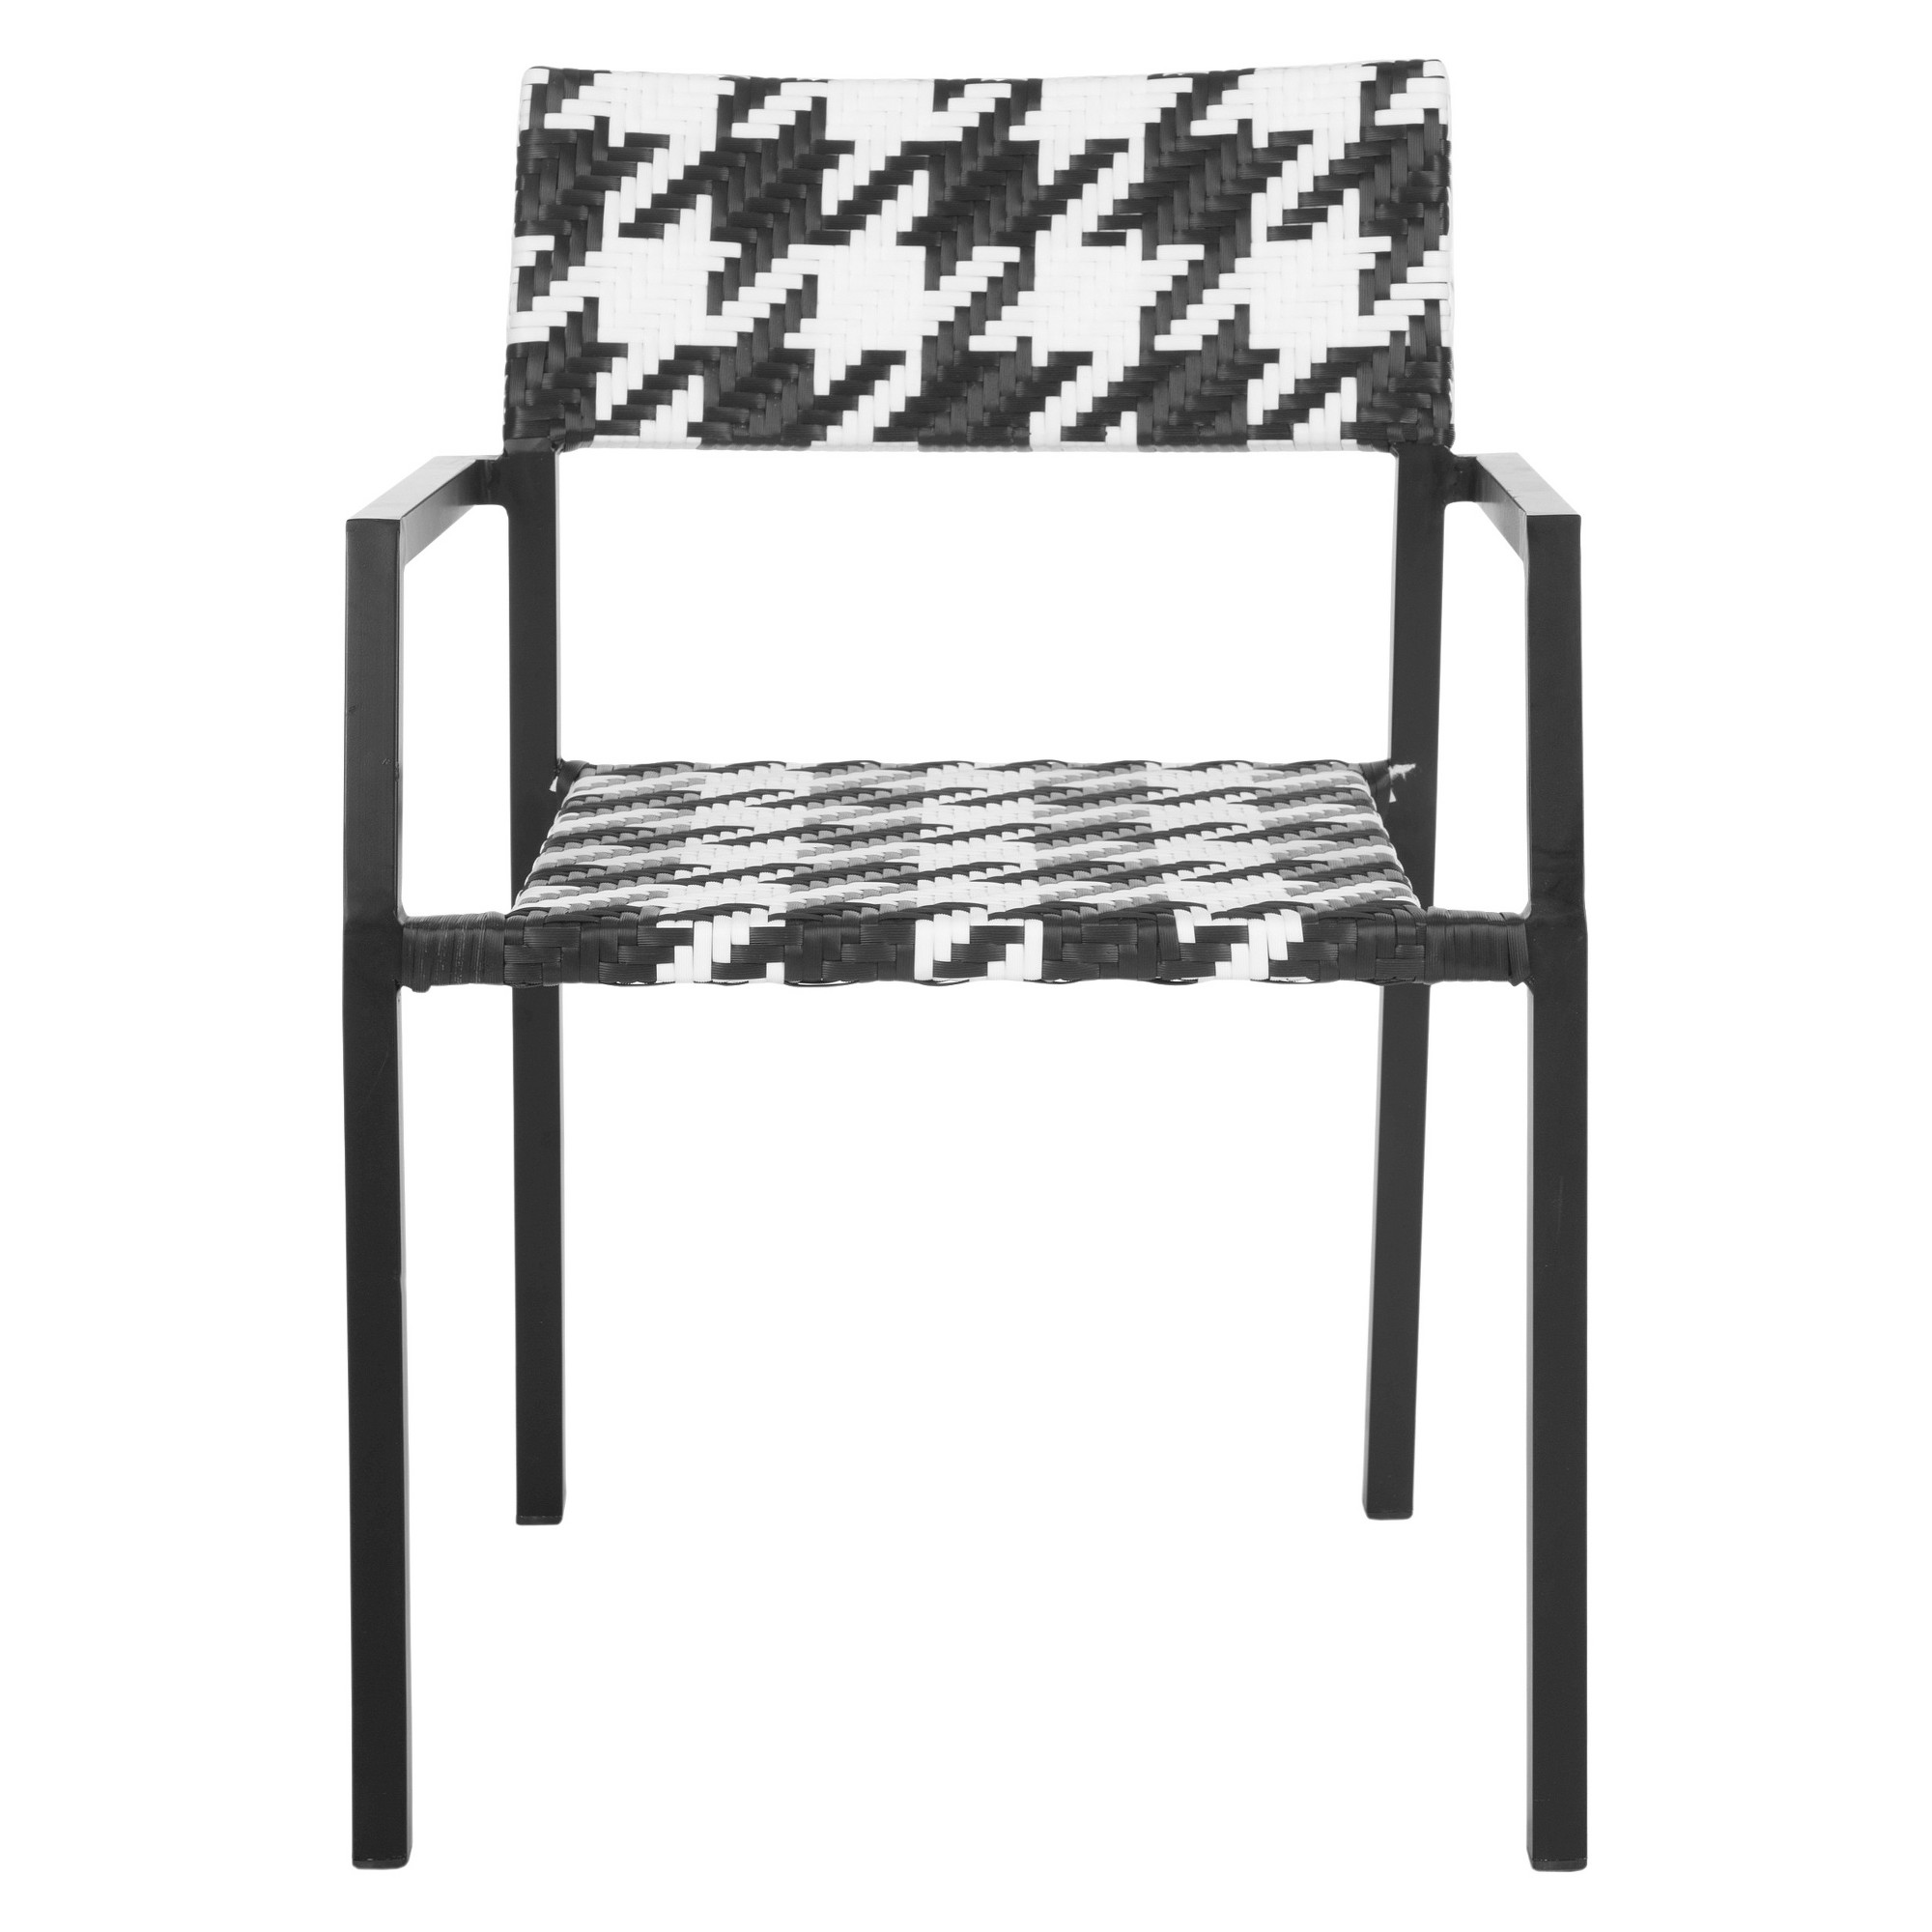 Sardina 2pk Wicker Patio Chair Set Black White Safavieh In 2019 Wicker Patio Chairs Patio Chairs Patio Furniture Sets